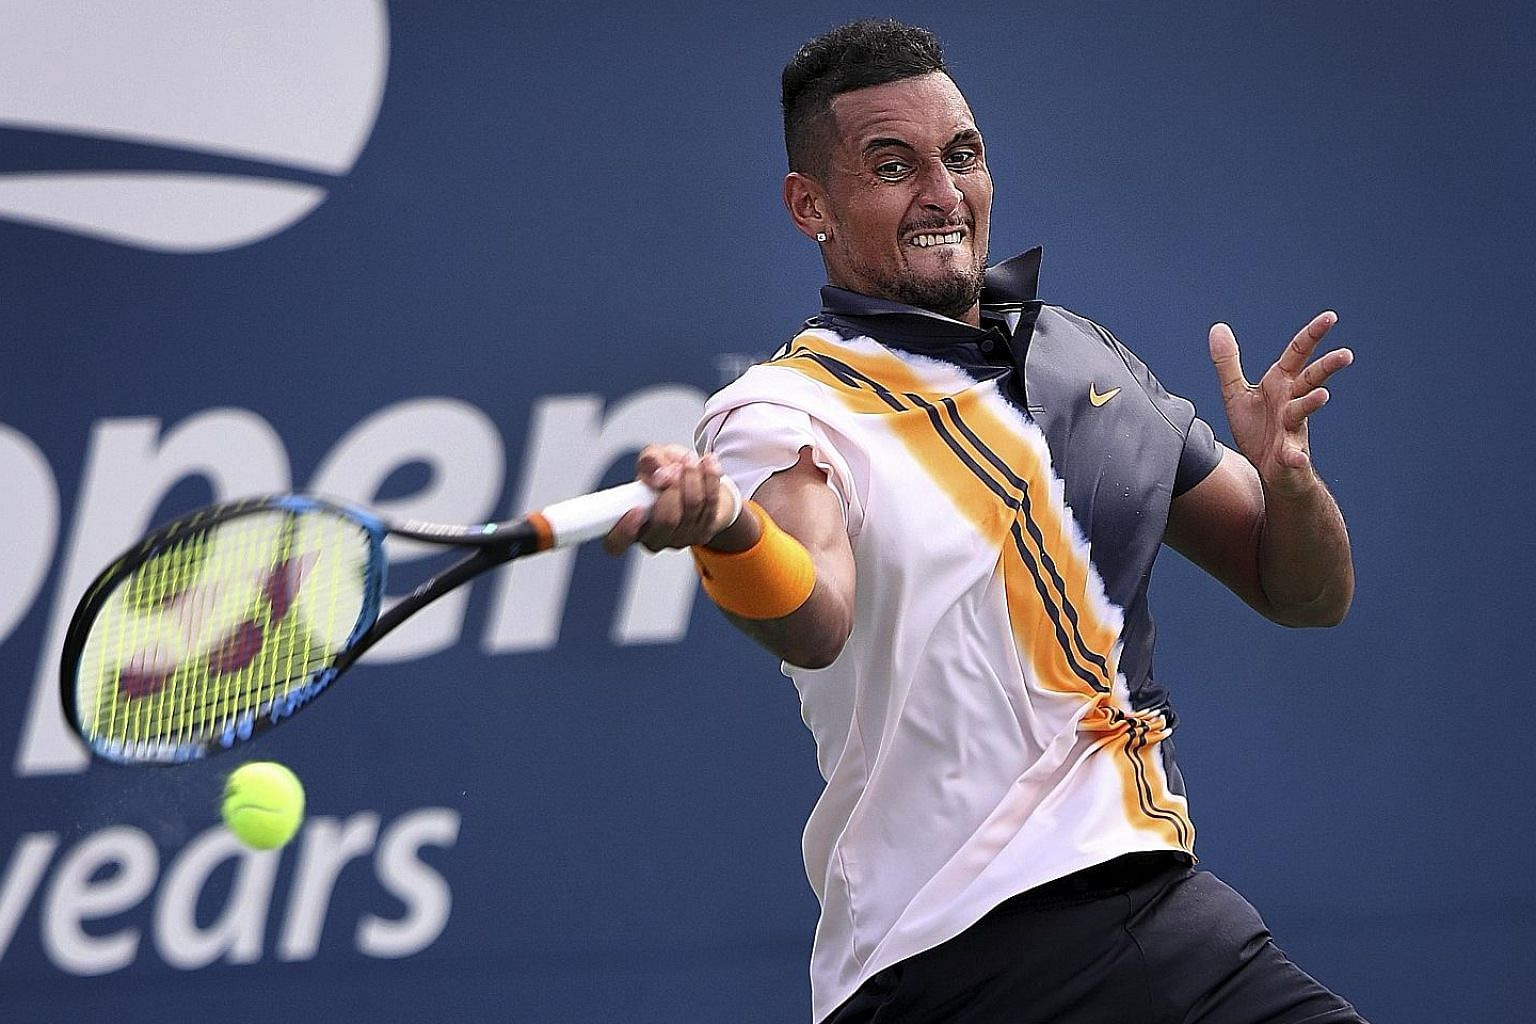 Australia's Nick Kyrgios in his US Open second-round match with France's Pierre-Hugues Herbert. Umpire Mohamed Lahyani stunned fans when he climbed down from his chair to give Kyrgios a controversial pep talk, which sparked a row over the impartialit